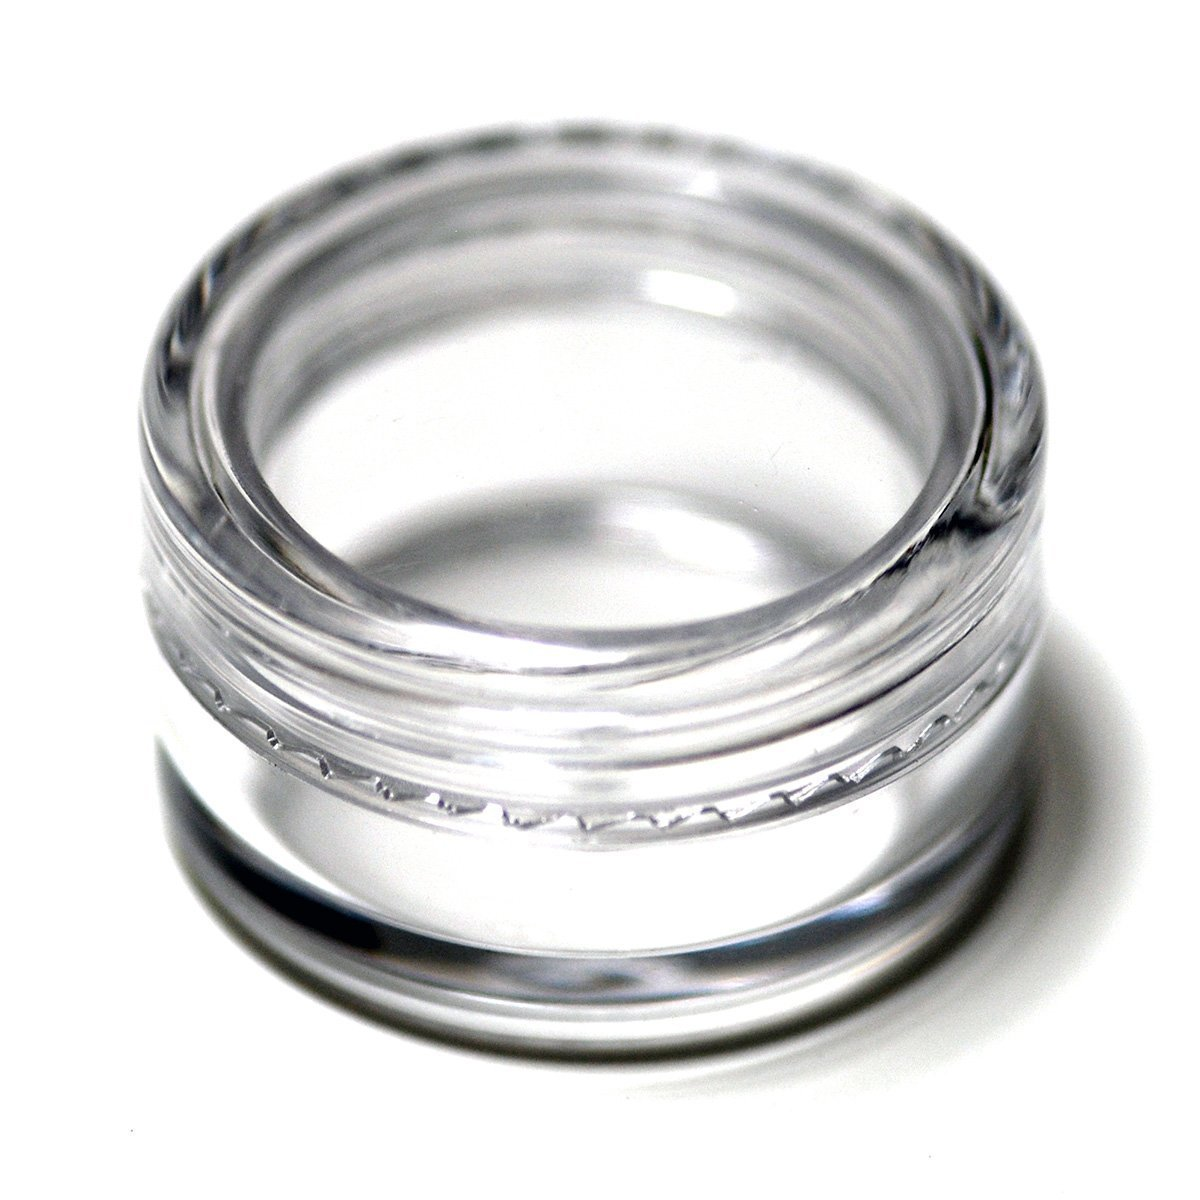 LEFV™ 100pcs Clear Empty Plastic Cosmetic Containers 5 Gram Size Pot Jars Eyshadow Container Lot Travel Sampling Bottles - Size 1 1/4